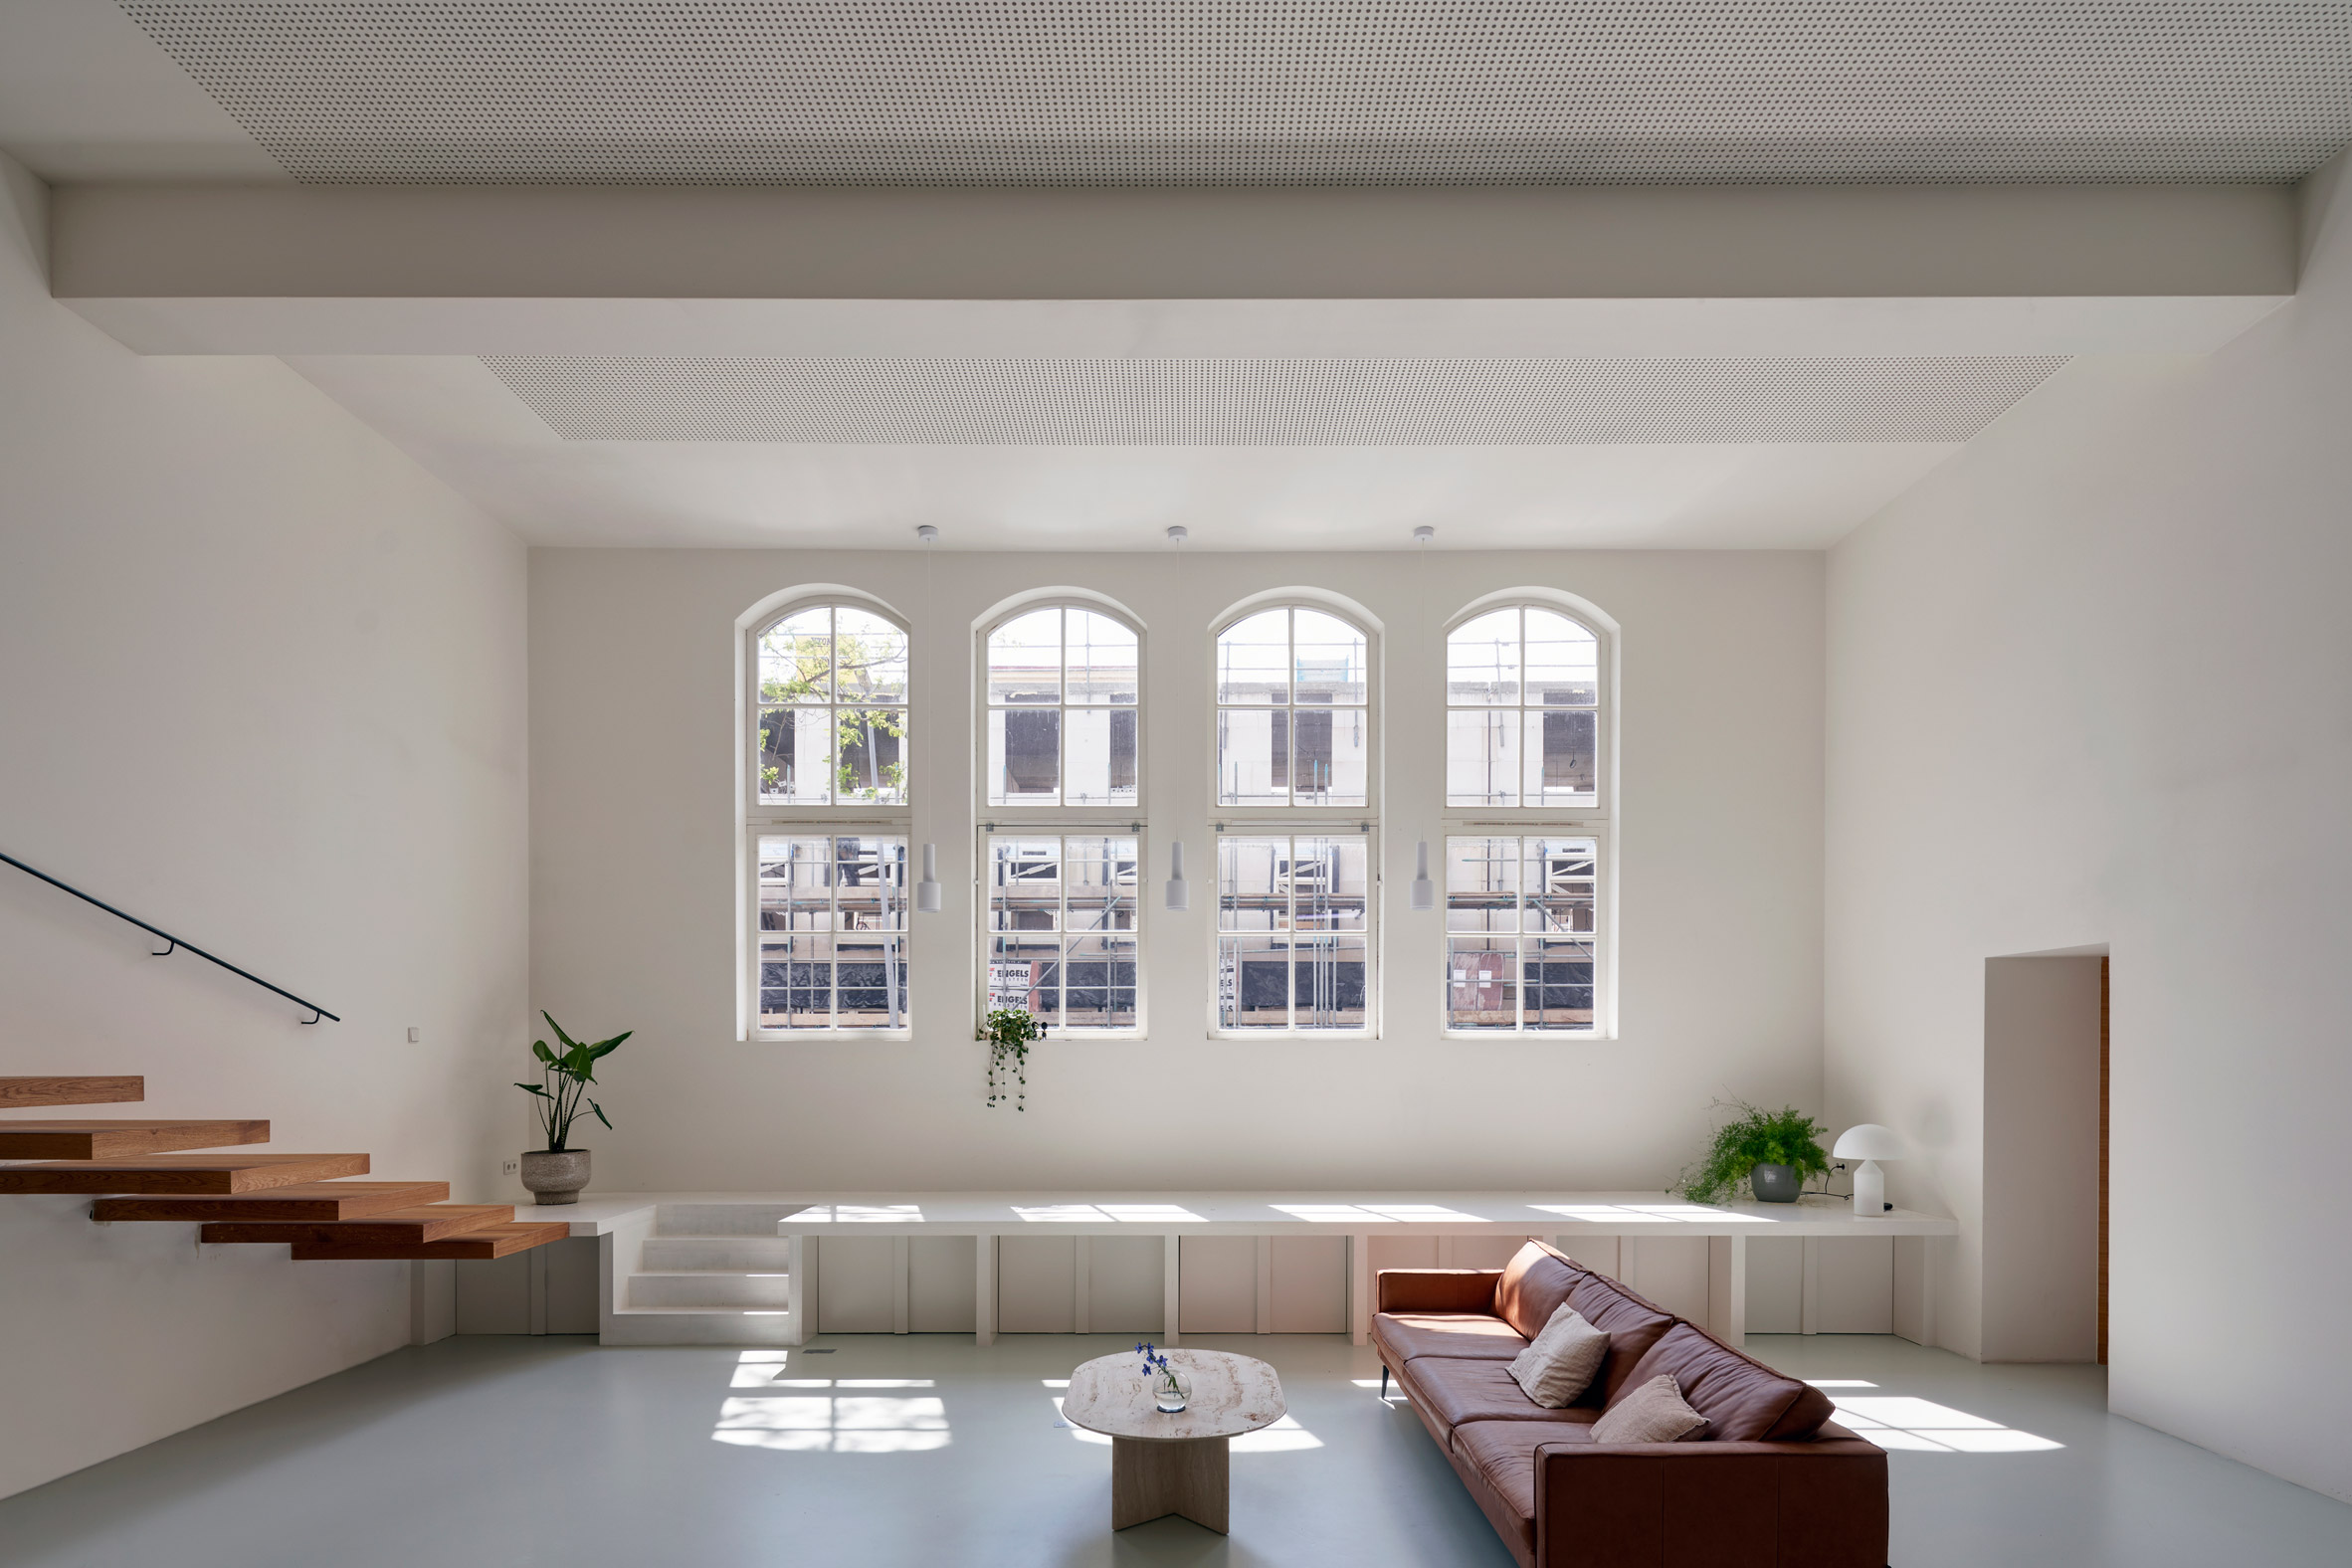 Living room with large arched windows